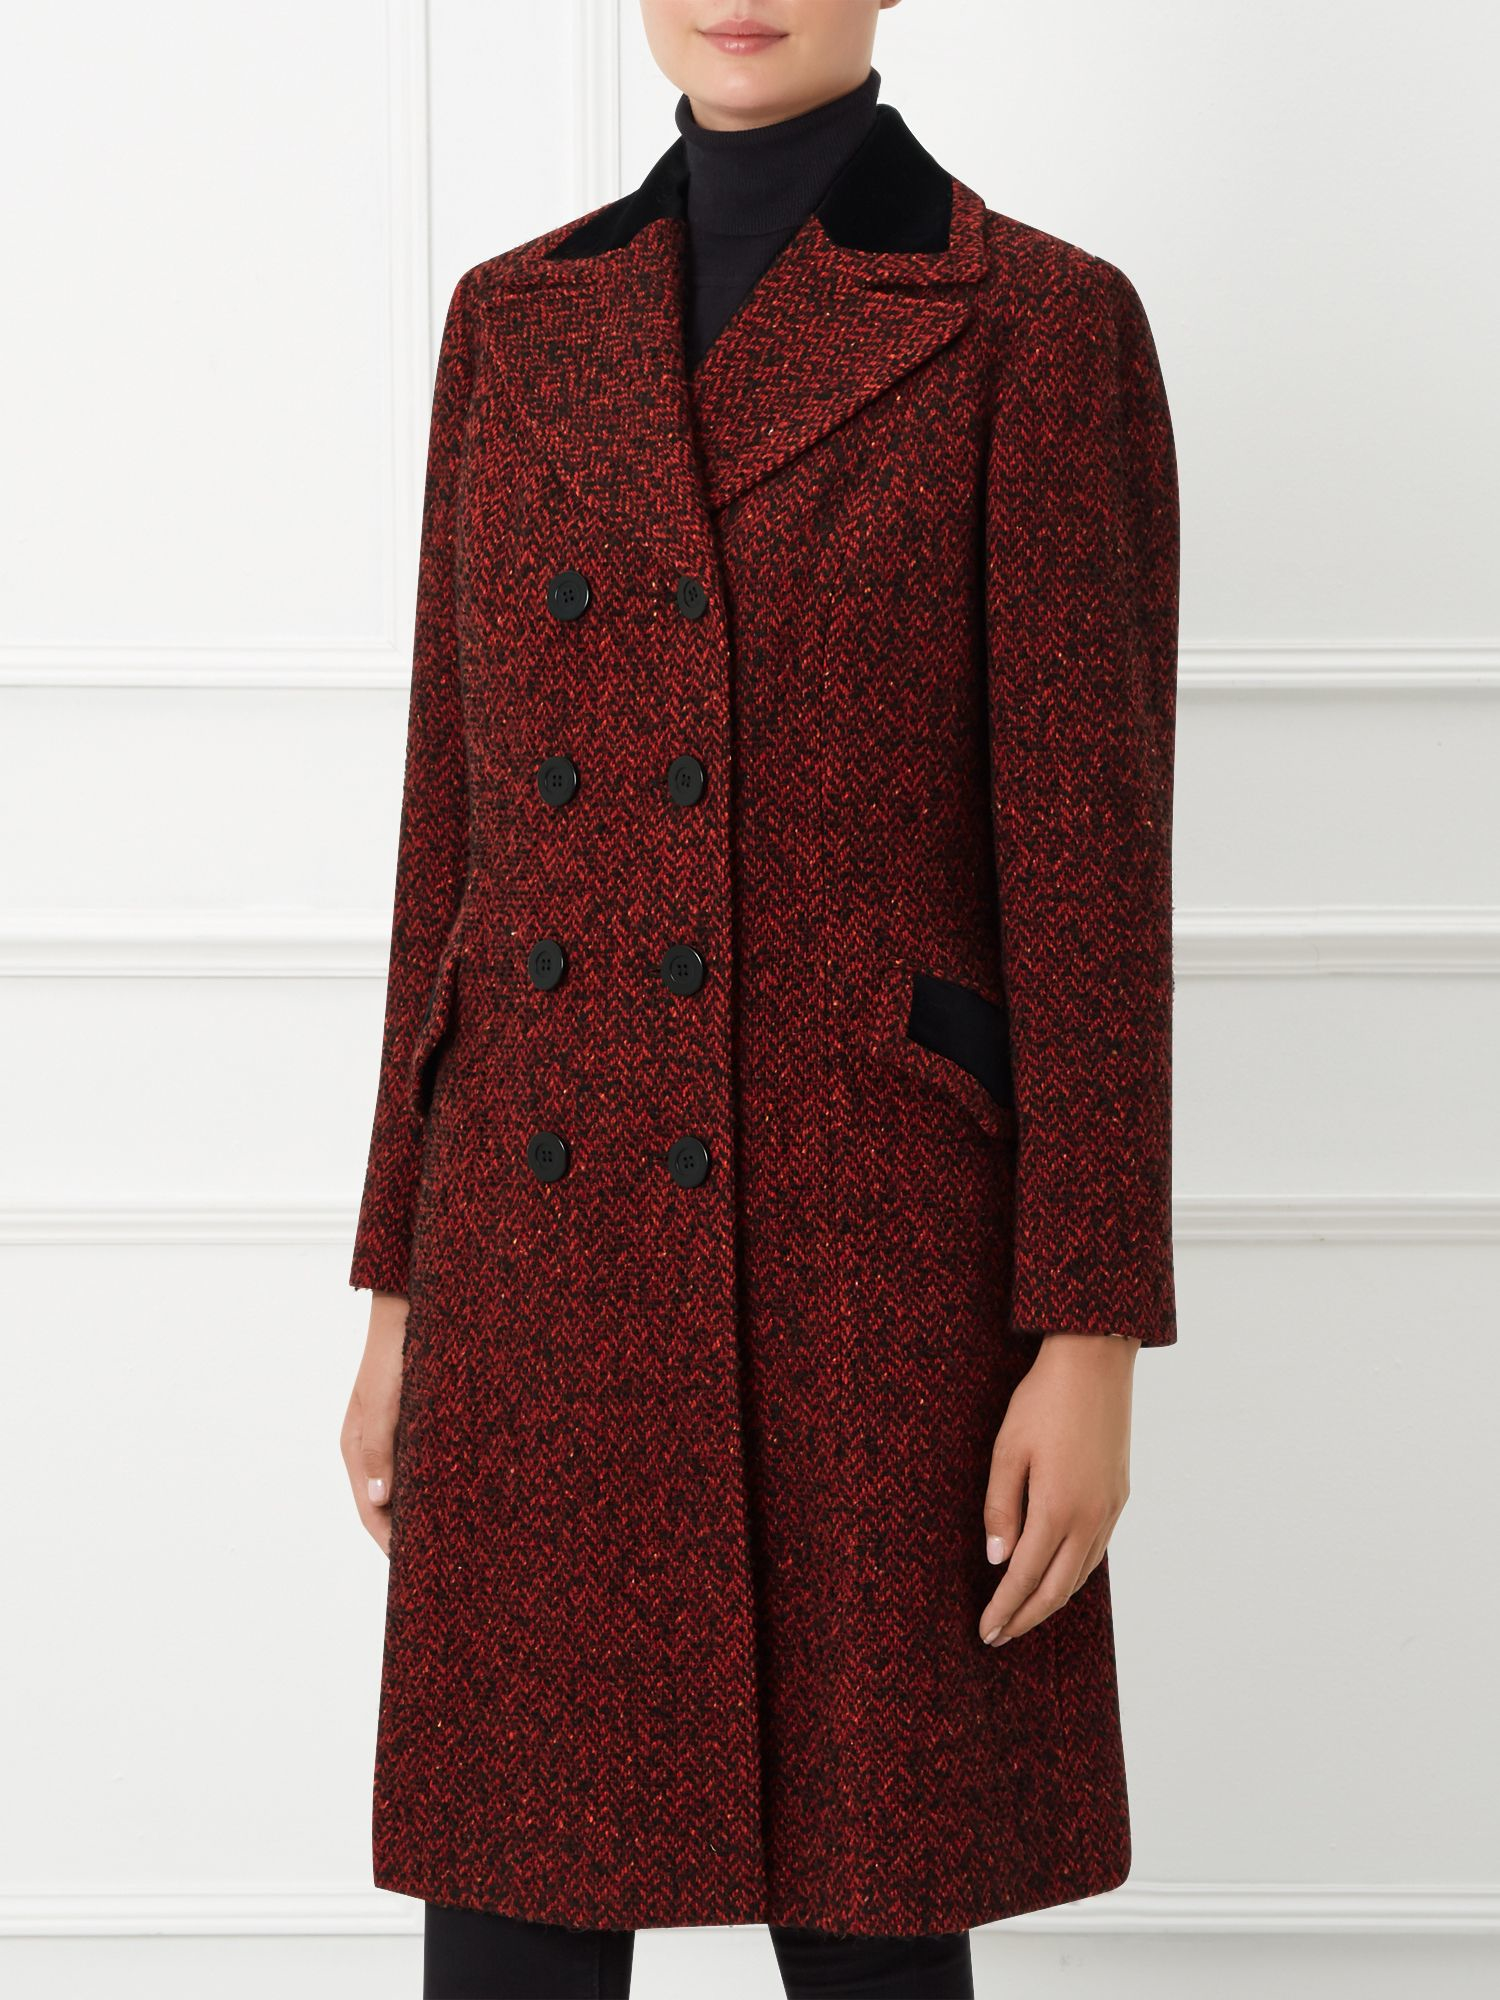 In the event that you are considering Red Tweed Jacket, you have certainly come to the proper place. Presently there are definitely a number of sites to purchase from on the world wide web, yet you have indeed picked our web page and we value this considerably.